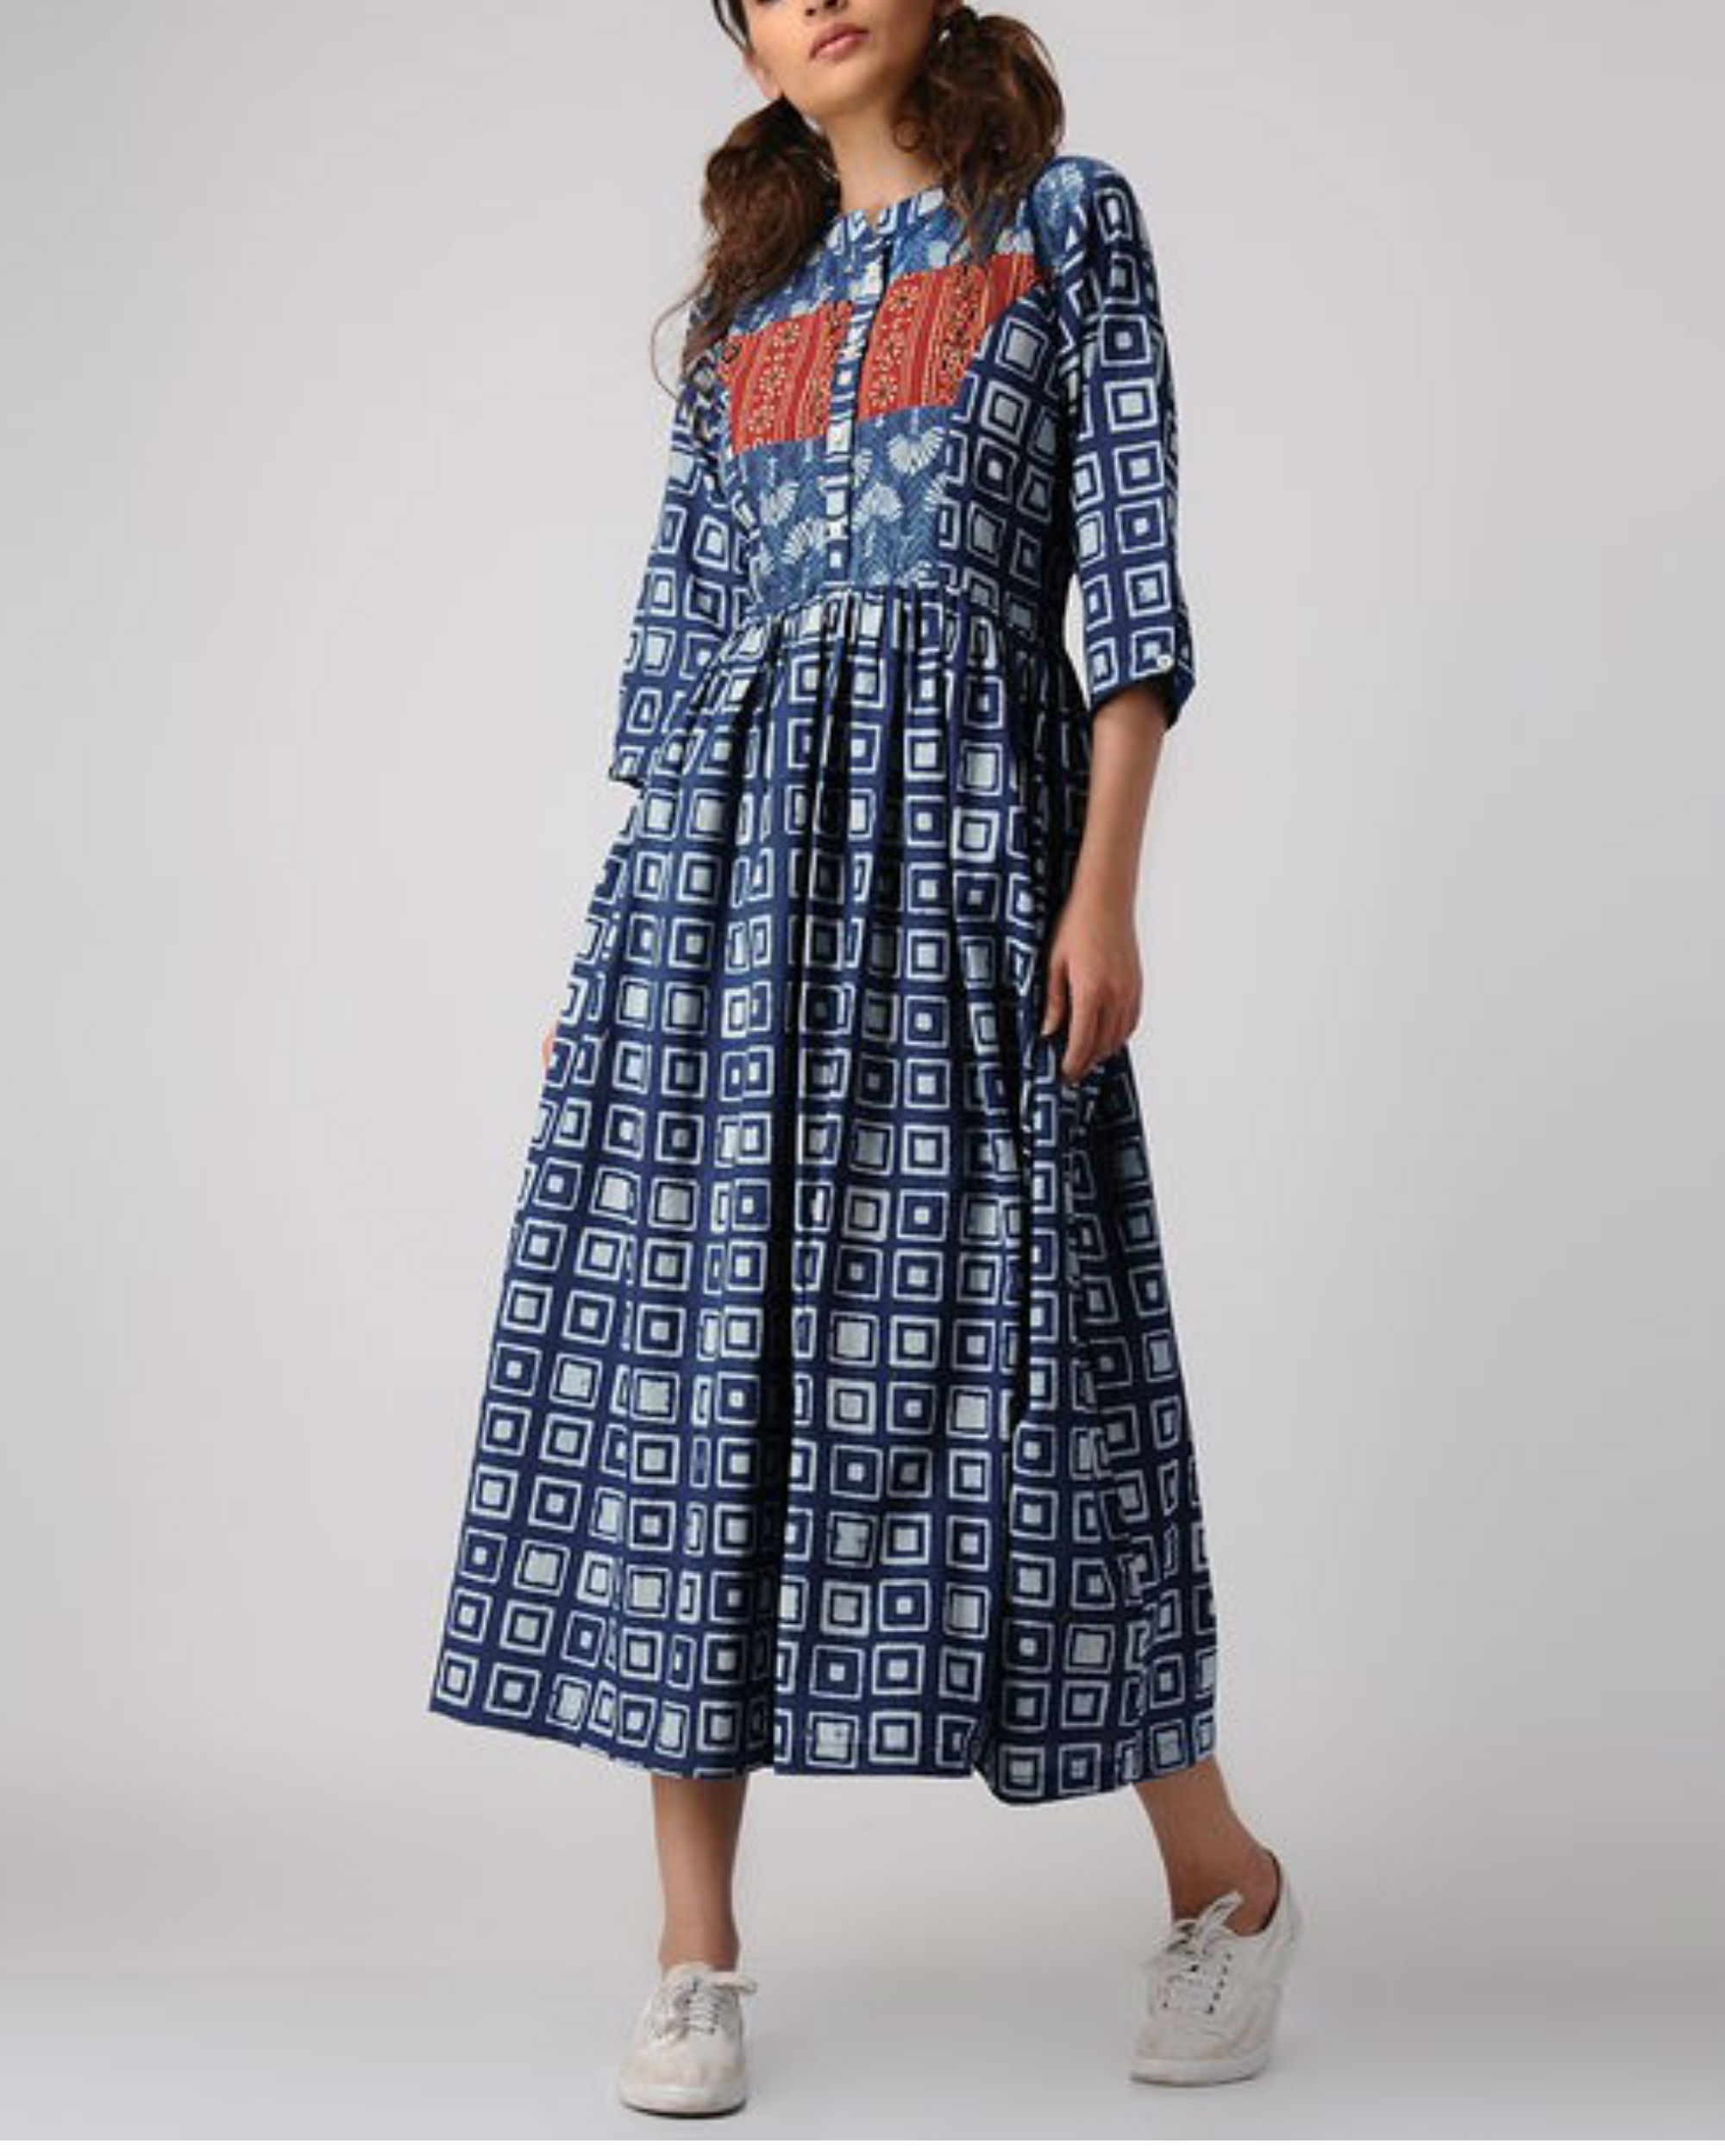 Indigo patch dress